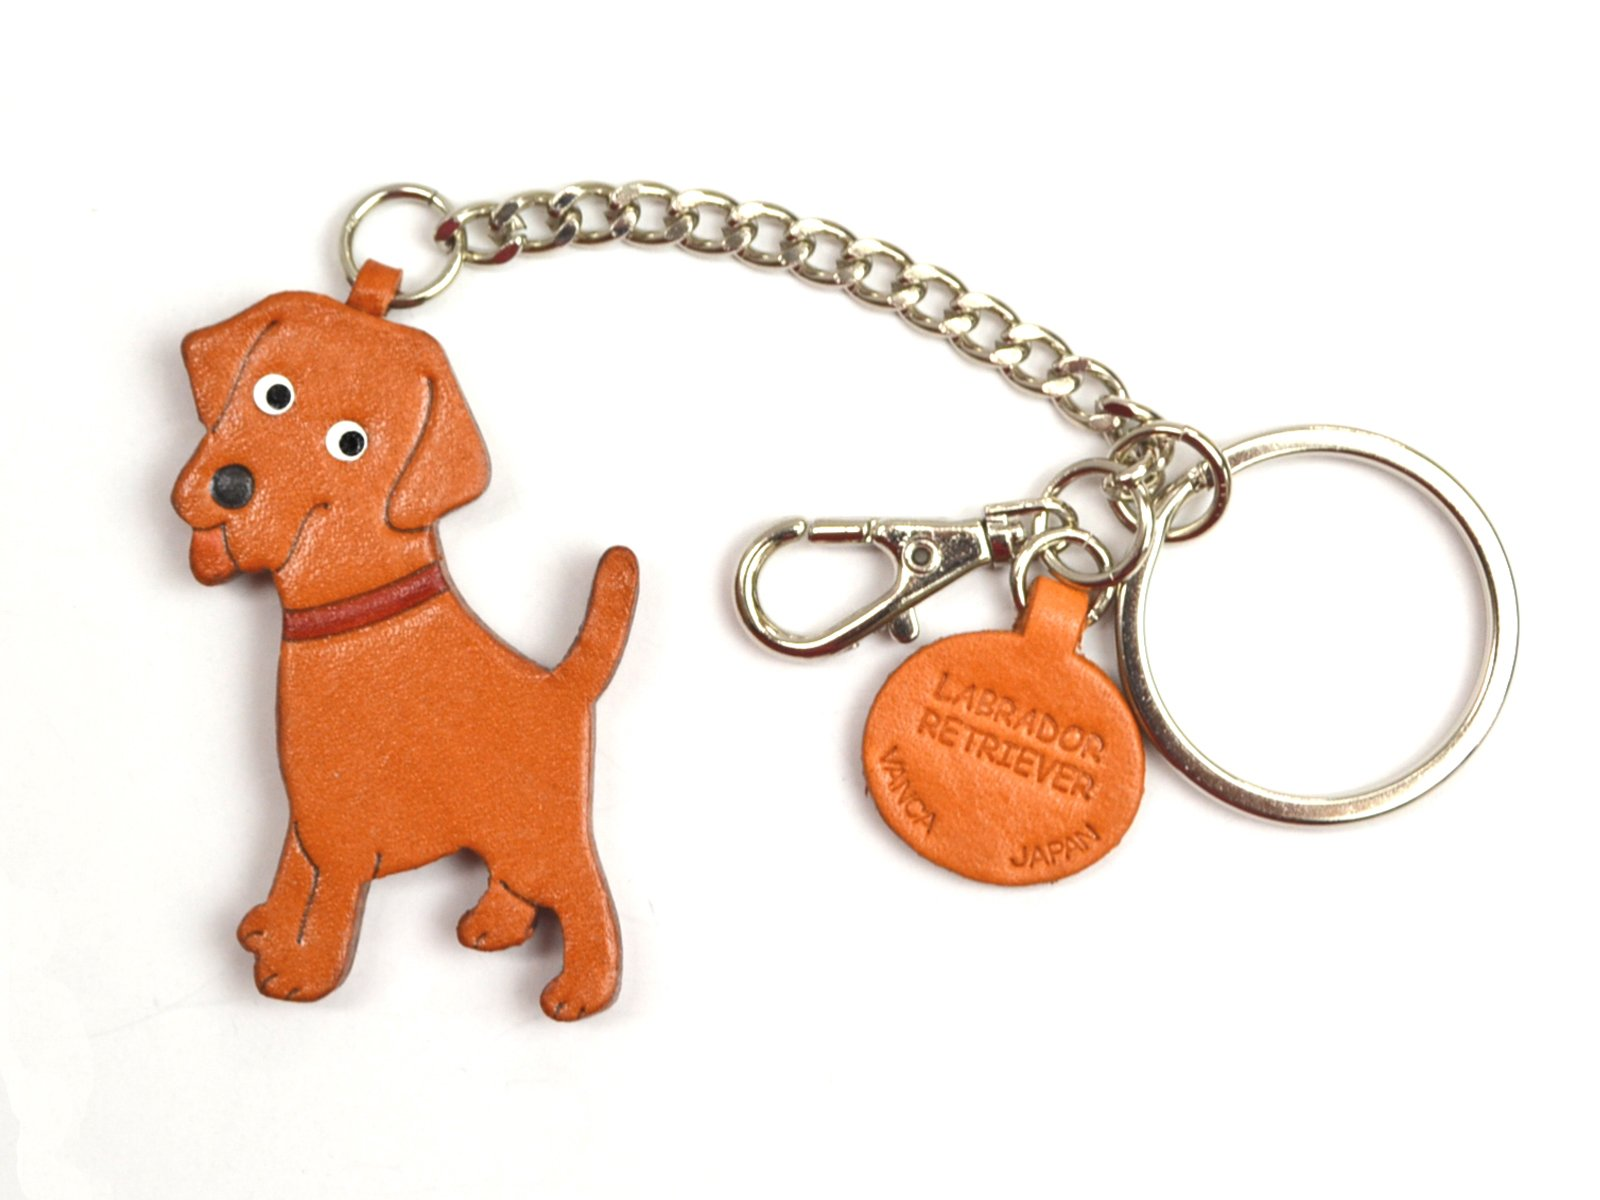 Labrador Retriever Leather Dog Bag/Key Ring Charm VANCA CRAFT-Collectible Keychain Made in Japan by Vanca.com